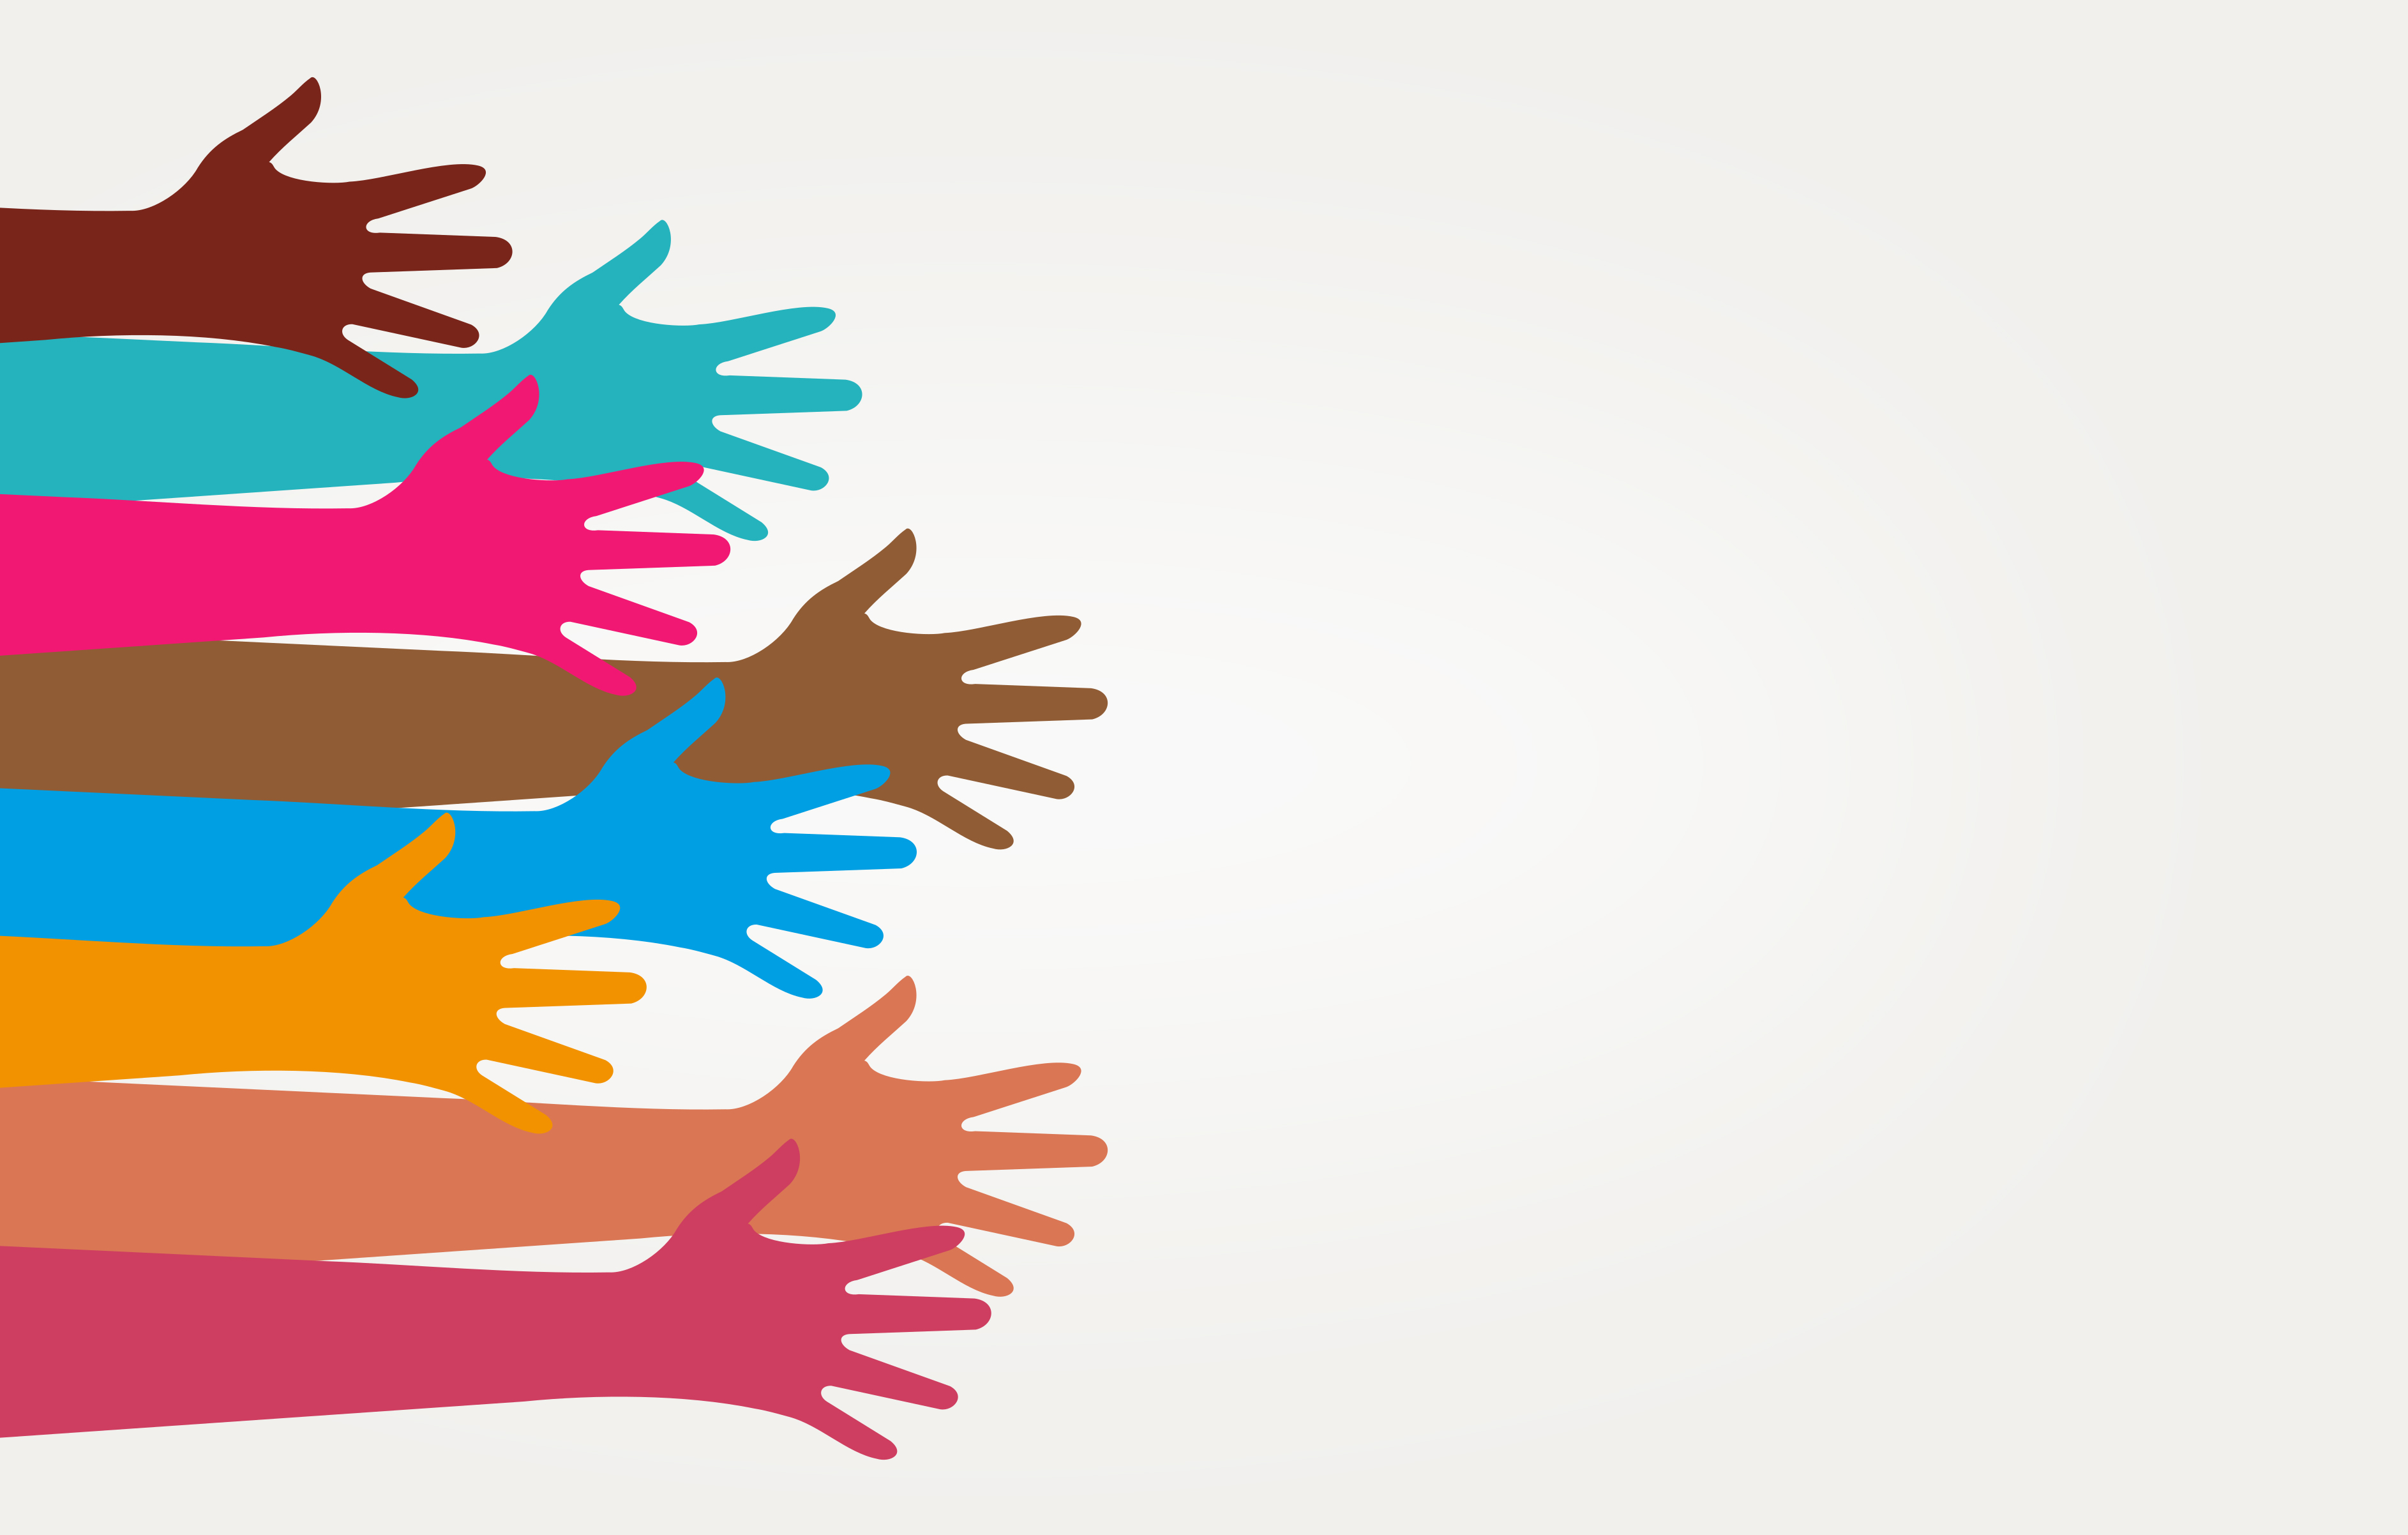 Teamwork and partnership - illustration with copyspace photo